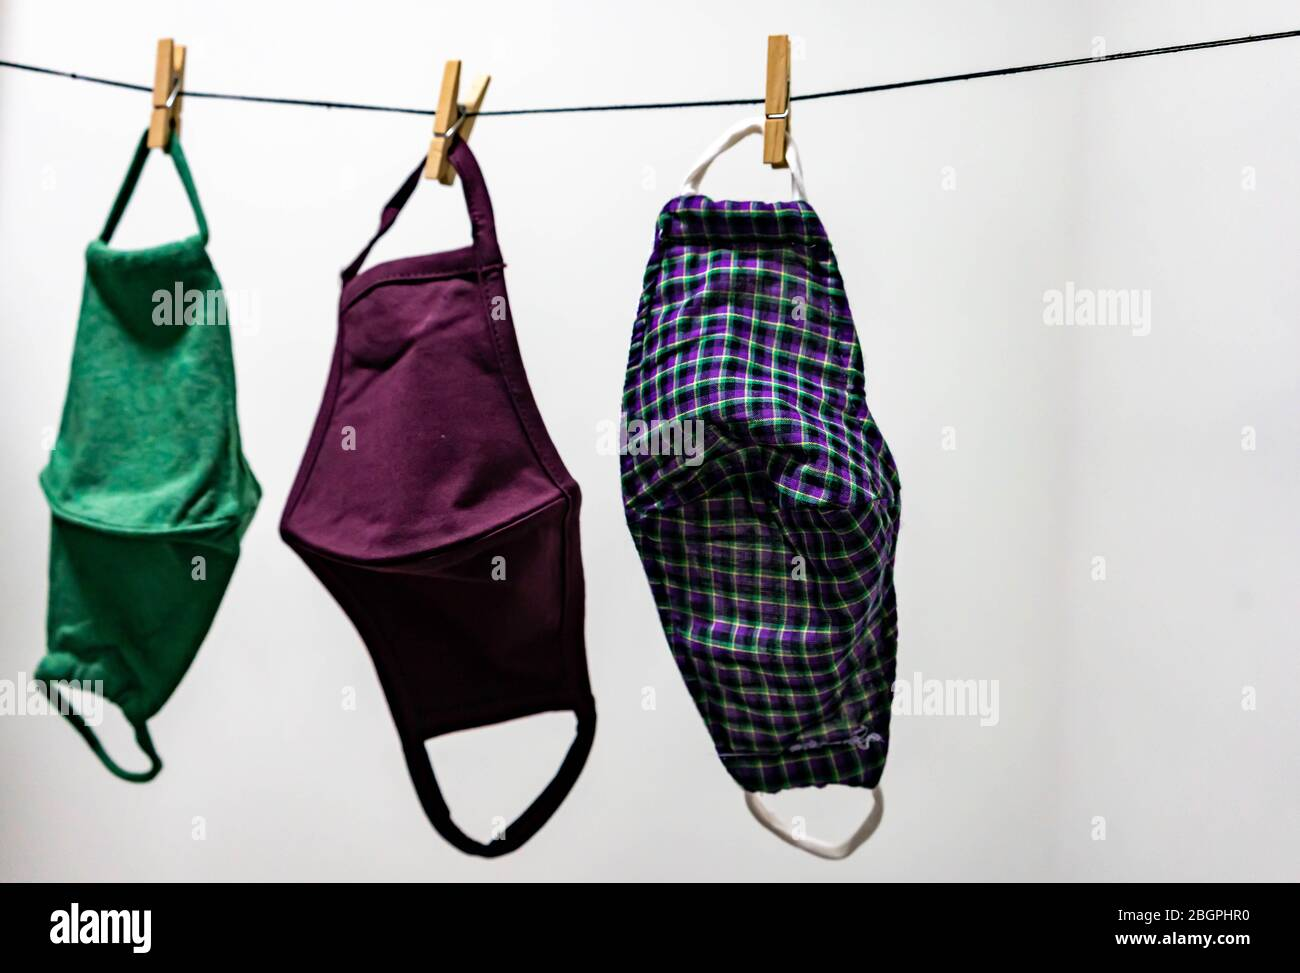 Washable face masks hanging after washing. Washable face masks to help reuse and to protect from being infected with corona covid-19 virus and other i Stock Photo